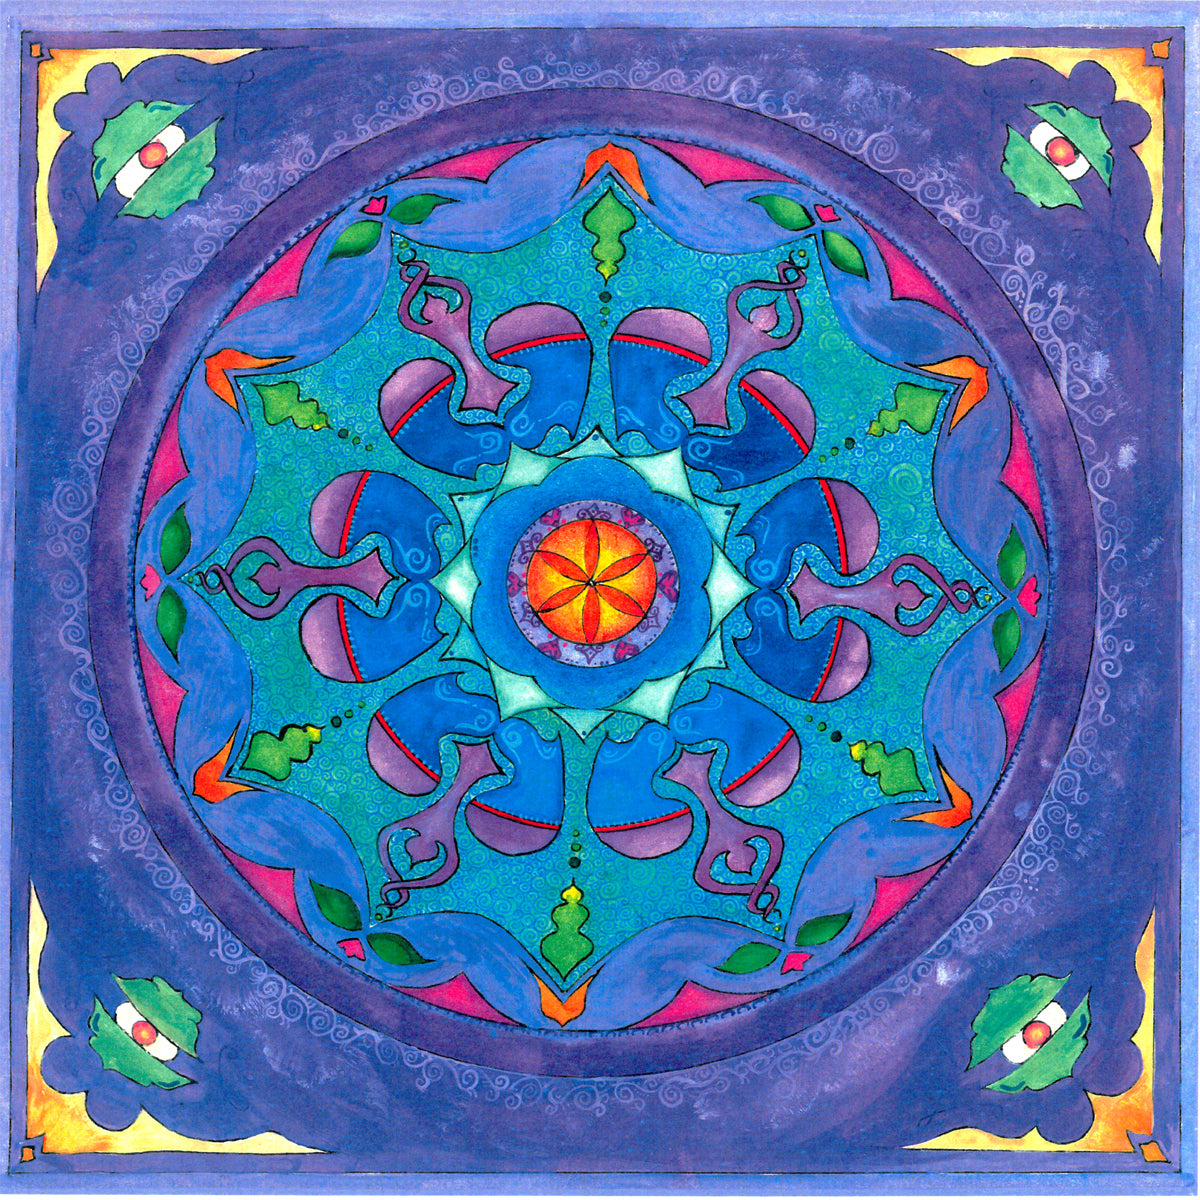 What are Mandalas and why are they so important? - Your